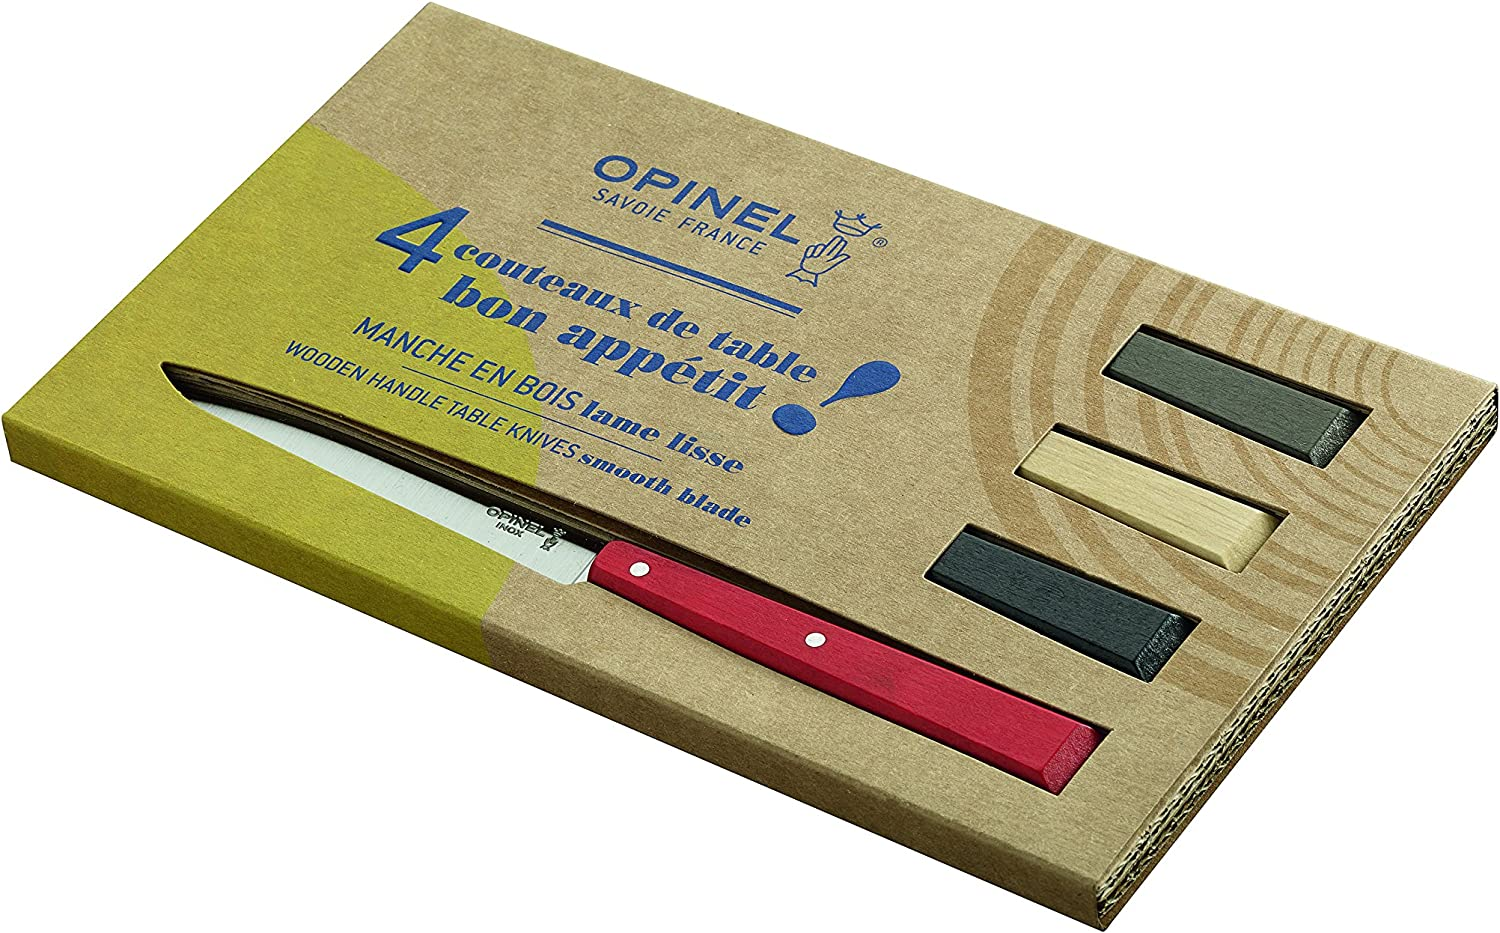 5.Opinel No. 125 Bon Appetit Set For contemporary kitchens